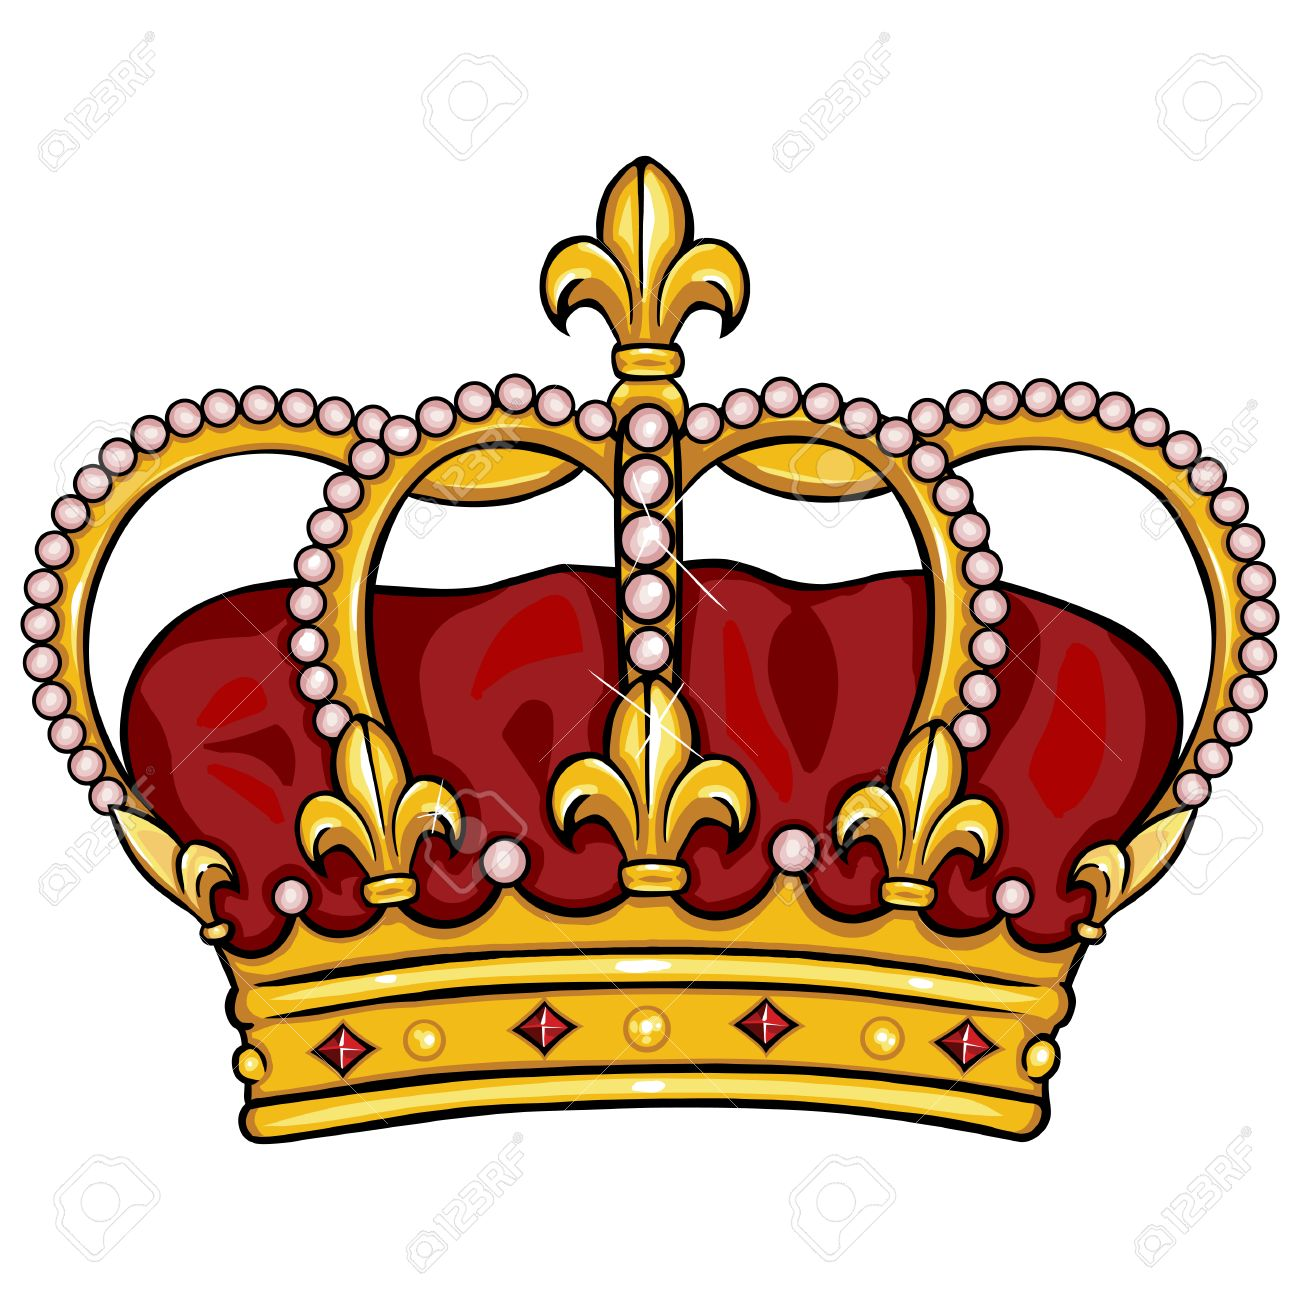 Vector Cartoon Royal Crown On White Background Royalty Free Cliparts Vectors And Stock Illustration Image 62740144 138,182 crown clip art images on gograph. vector cartoon royal crown on white background